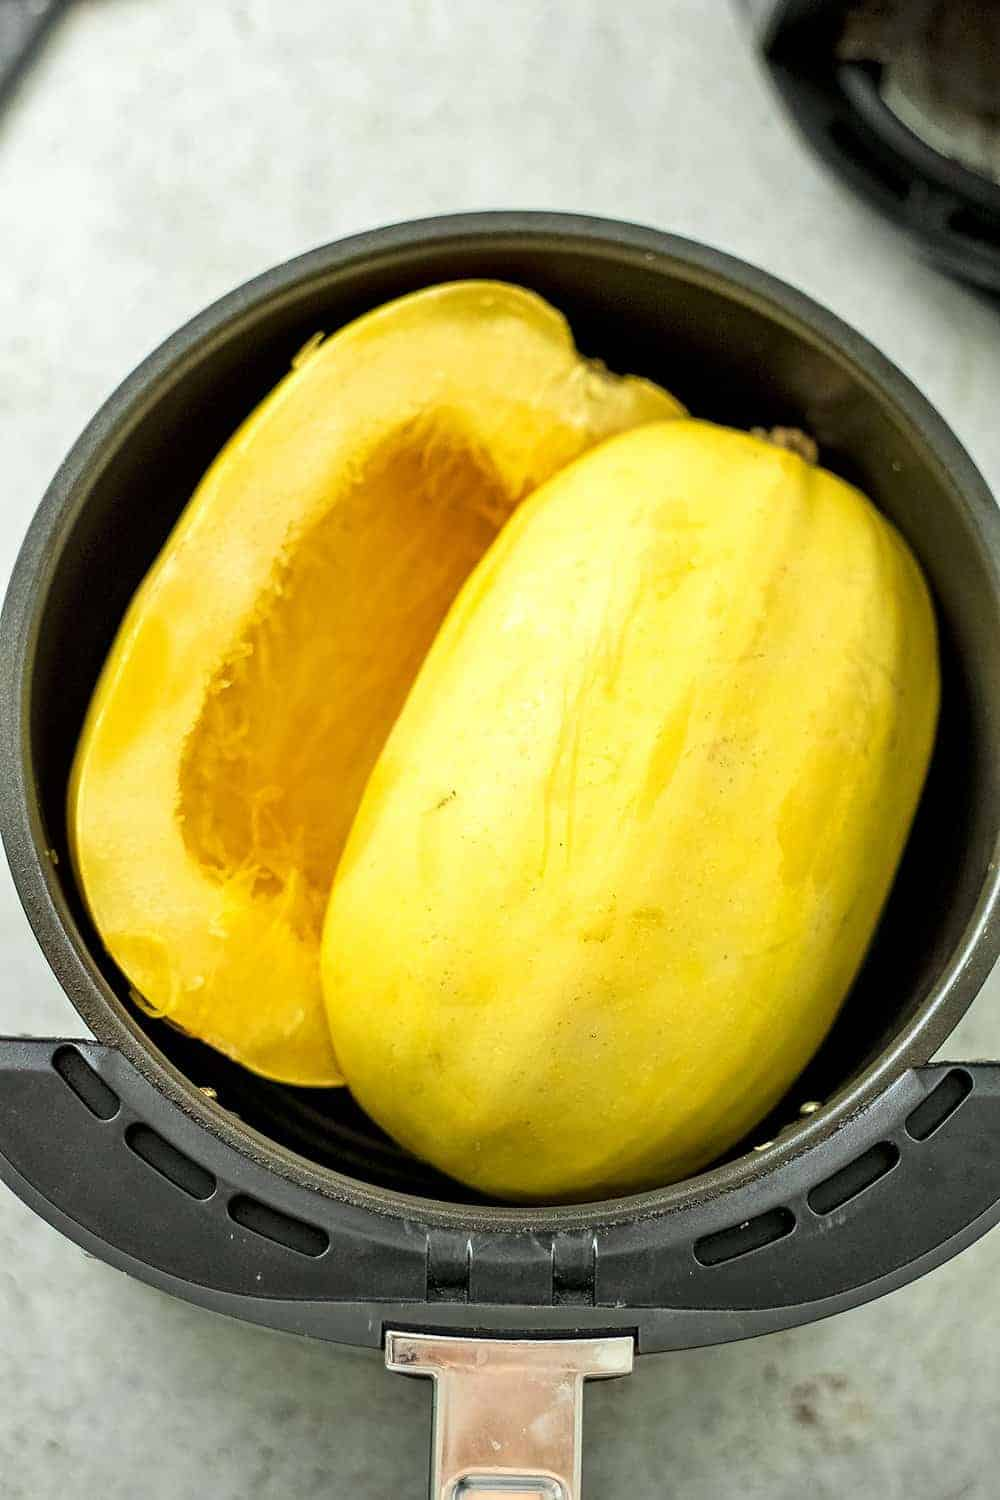 Spaghetti squash in air fryer basket before cooking.